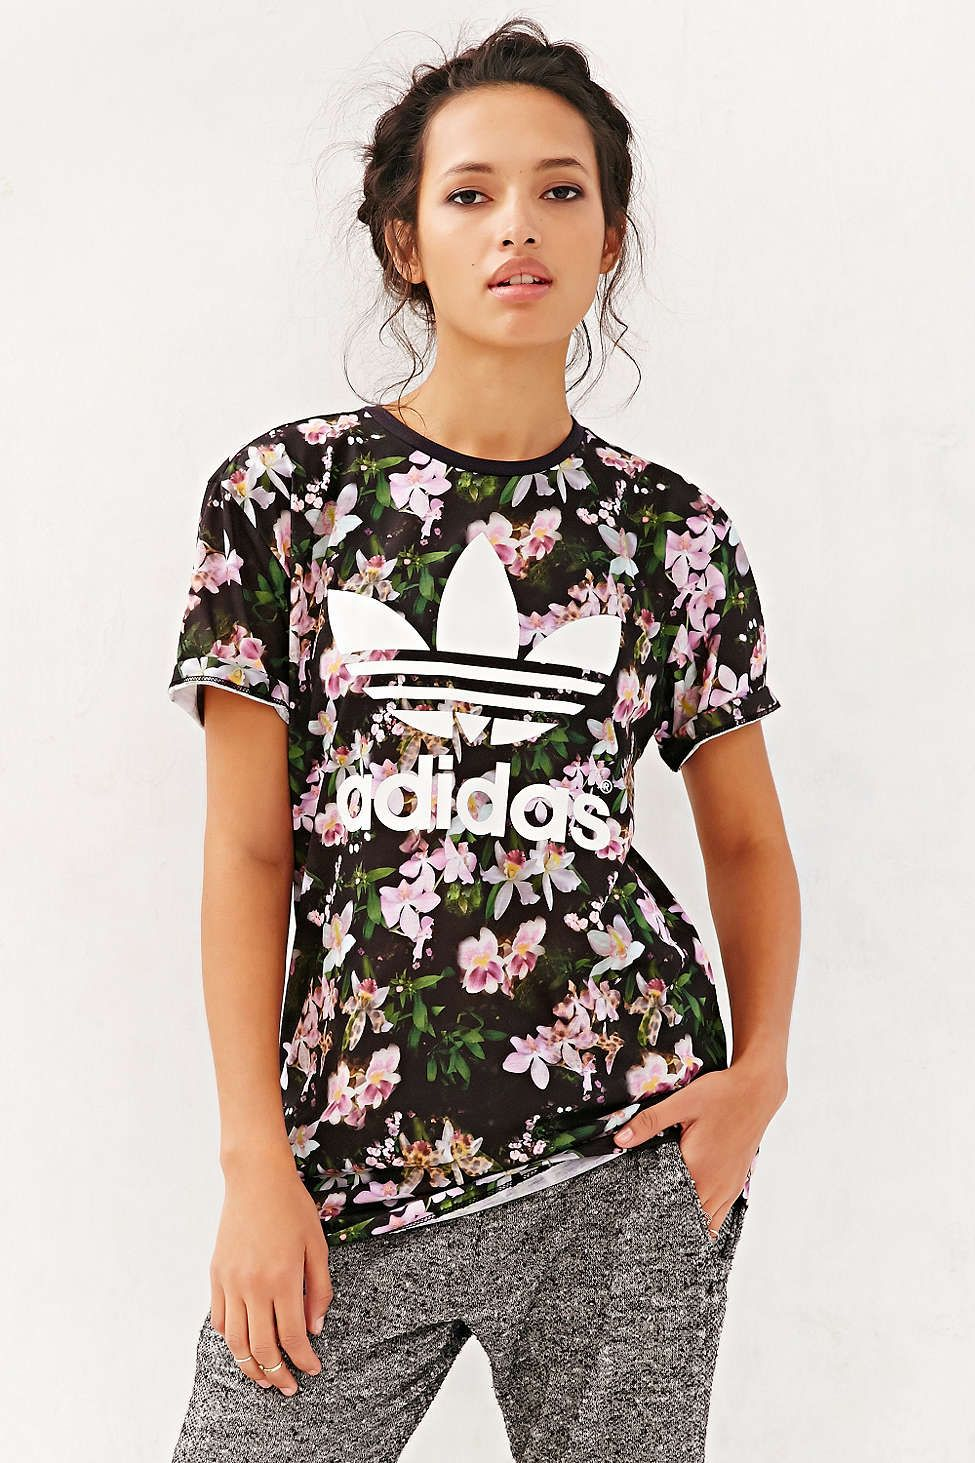 d0fcbfb5303 adidas Orchid Logo Tee size small @ urban outfitters or adidas store